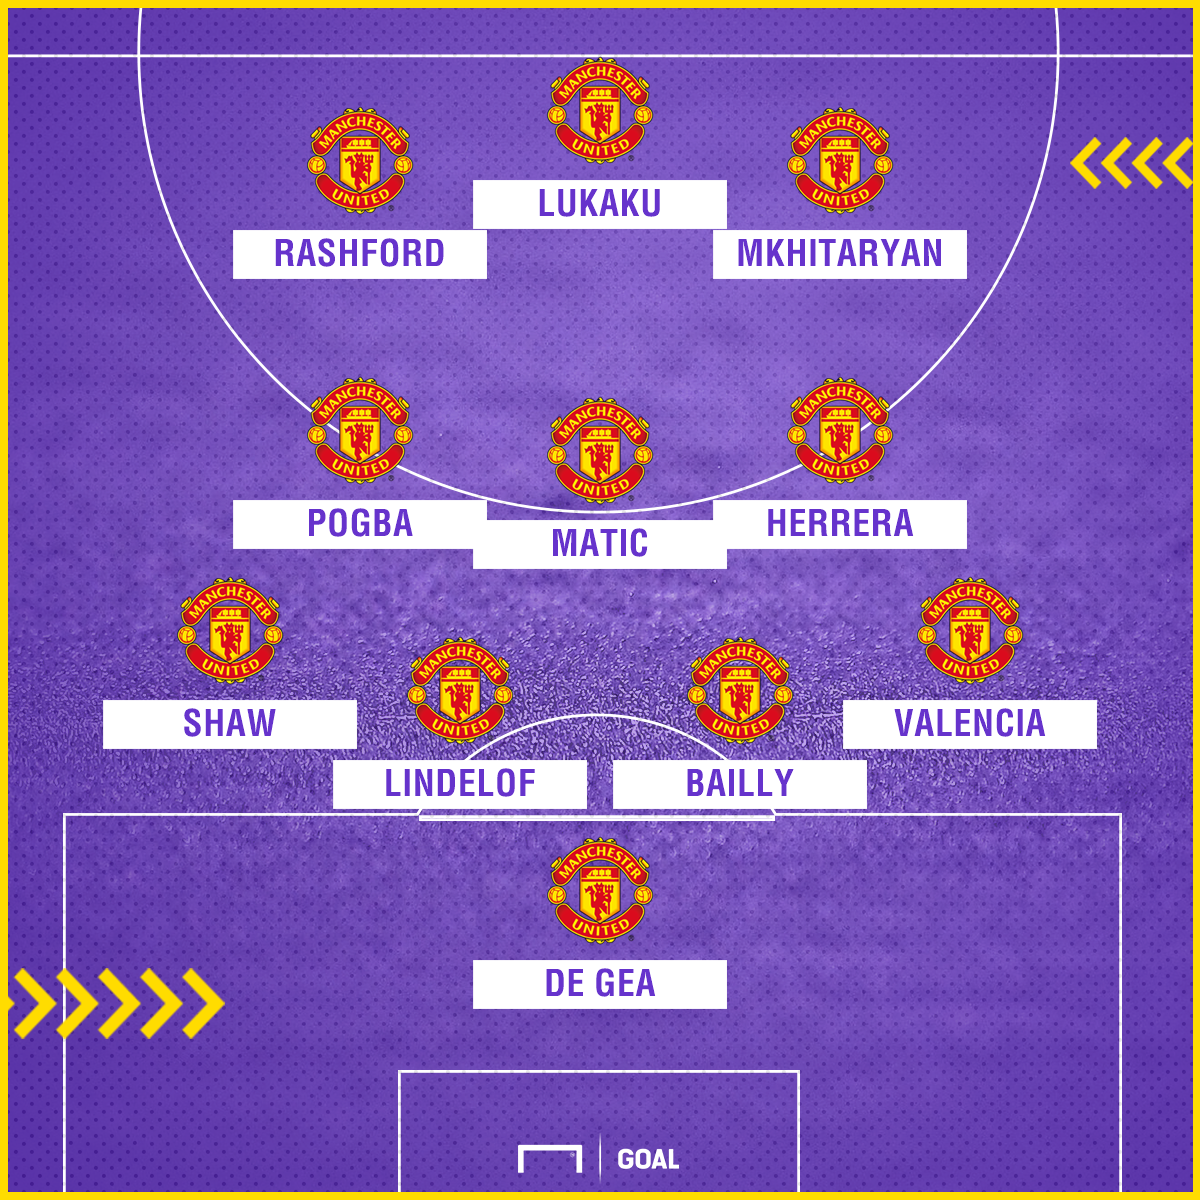 Manchester United starting XI gfx